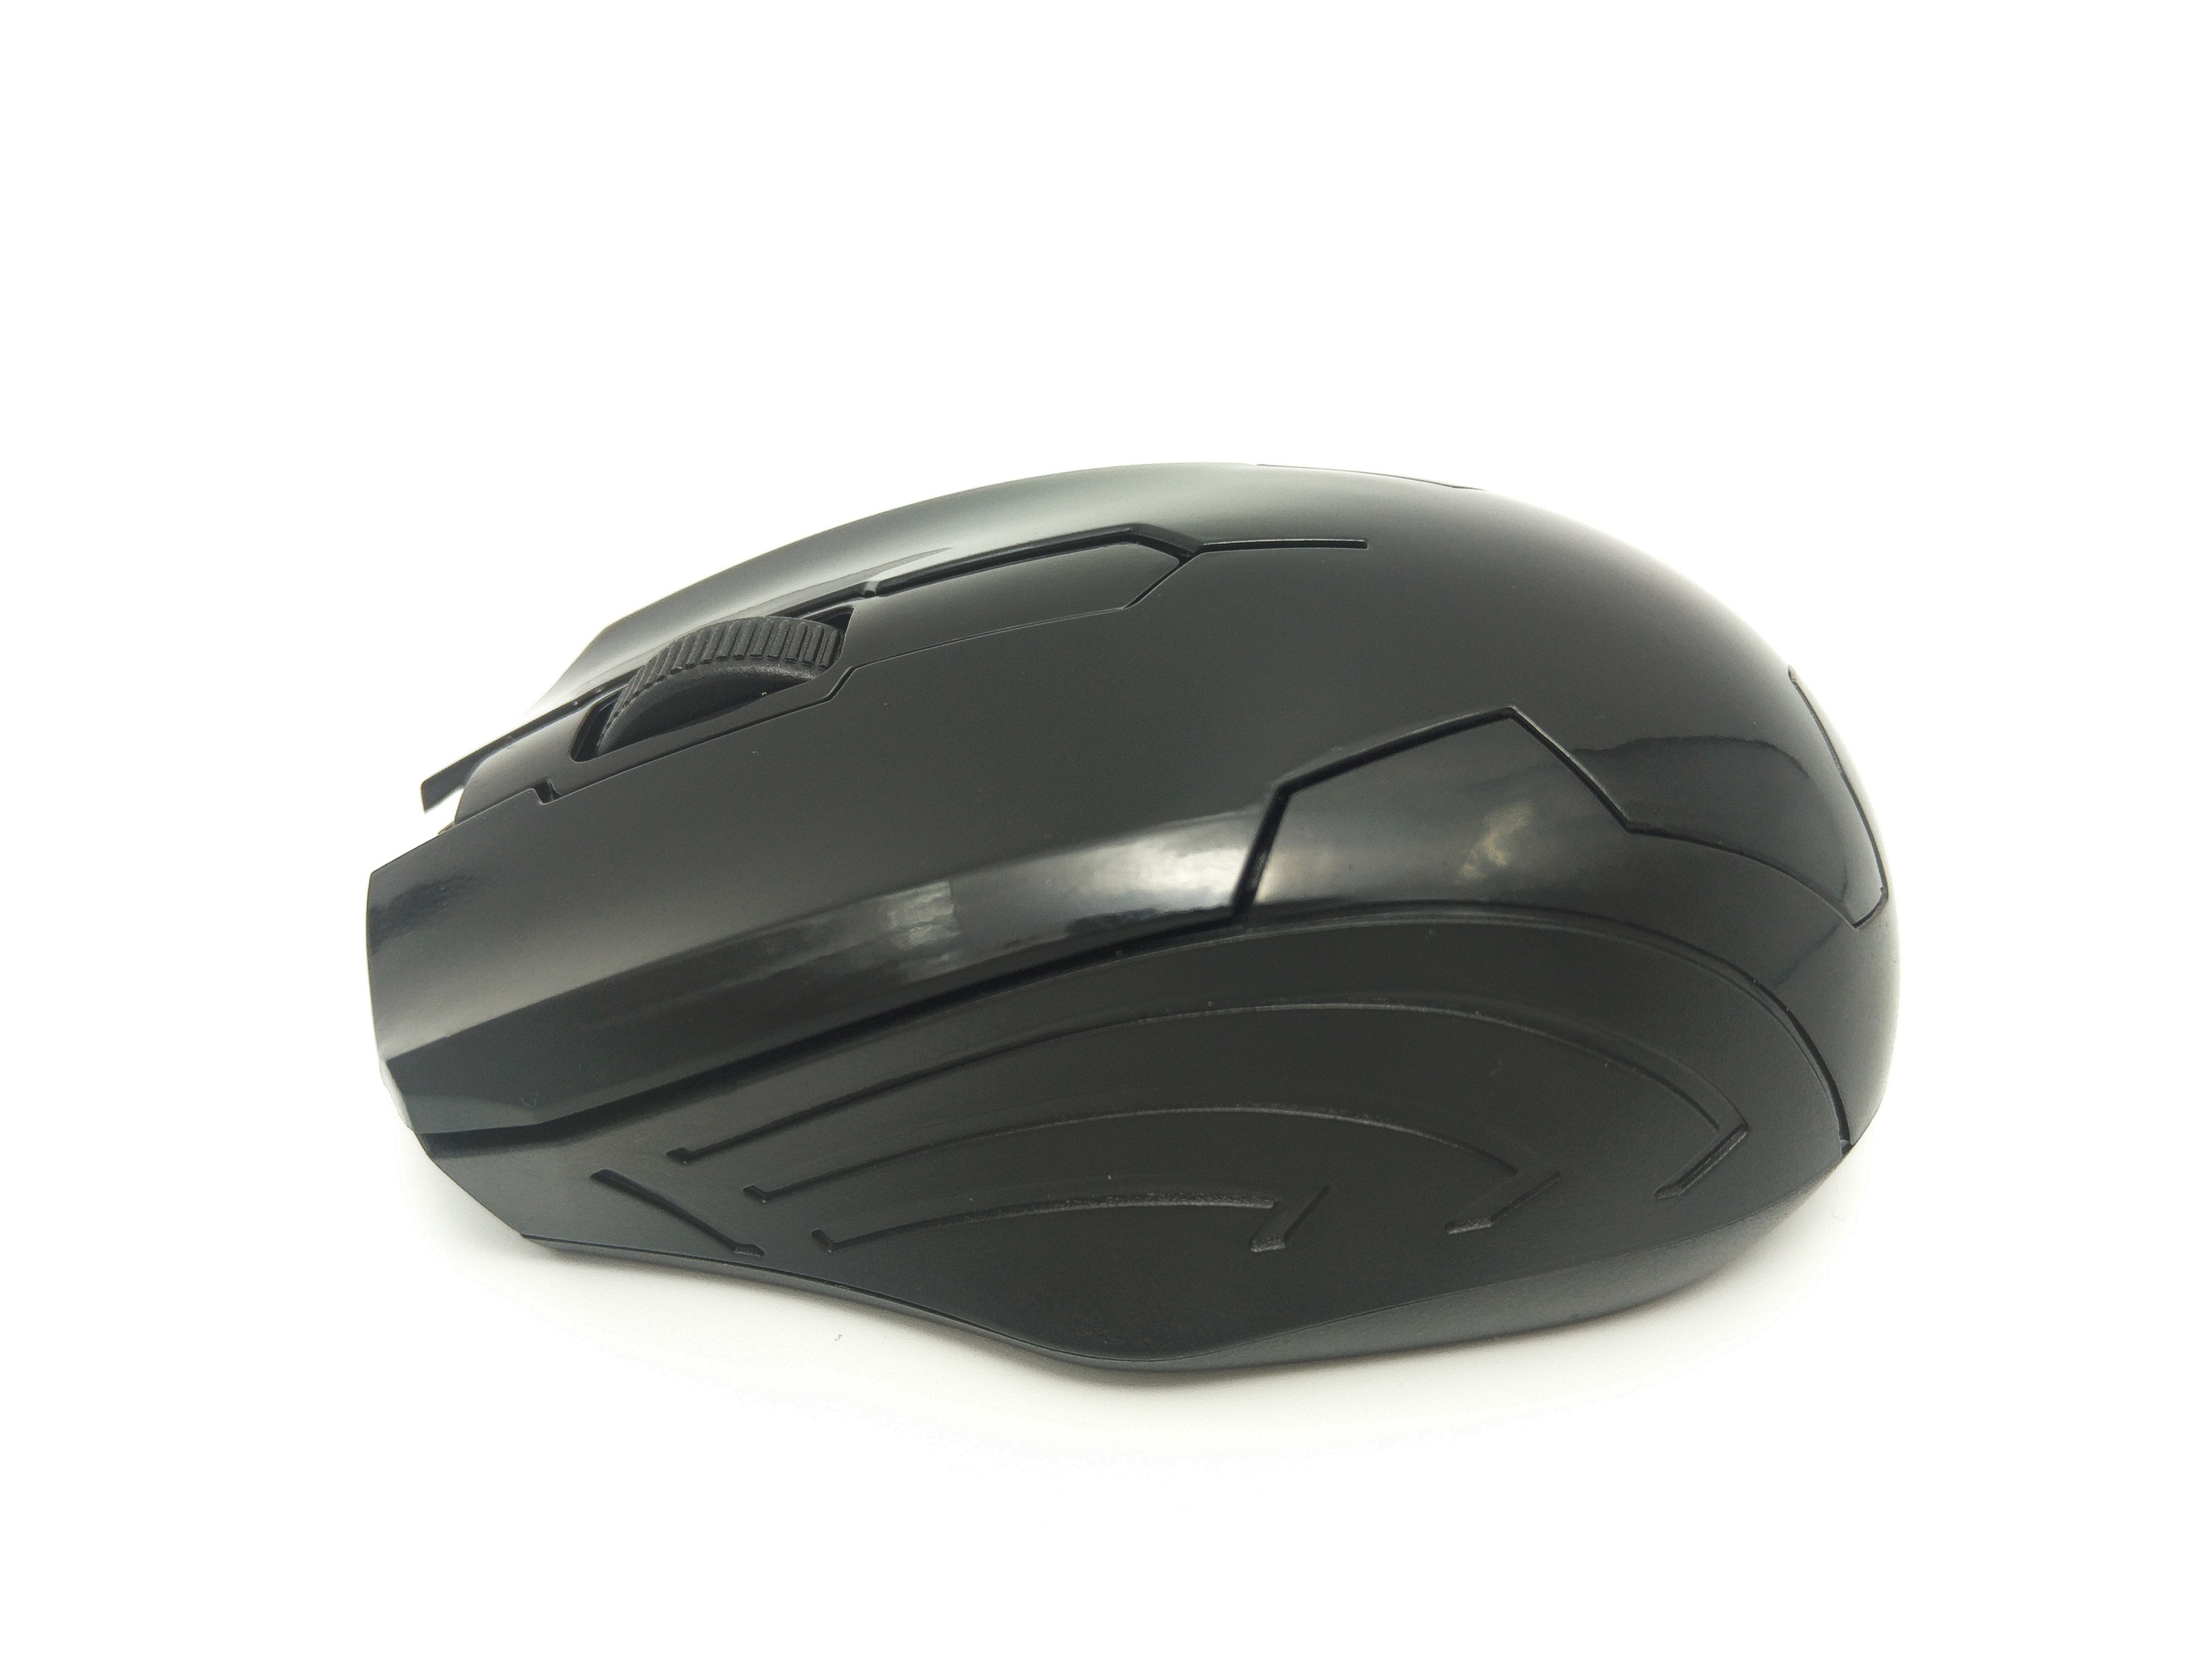 Mouse wireless Jiexin A701 cu LED, 3200 DPI, USB, Negru